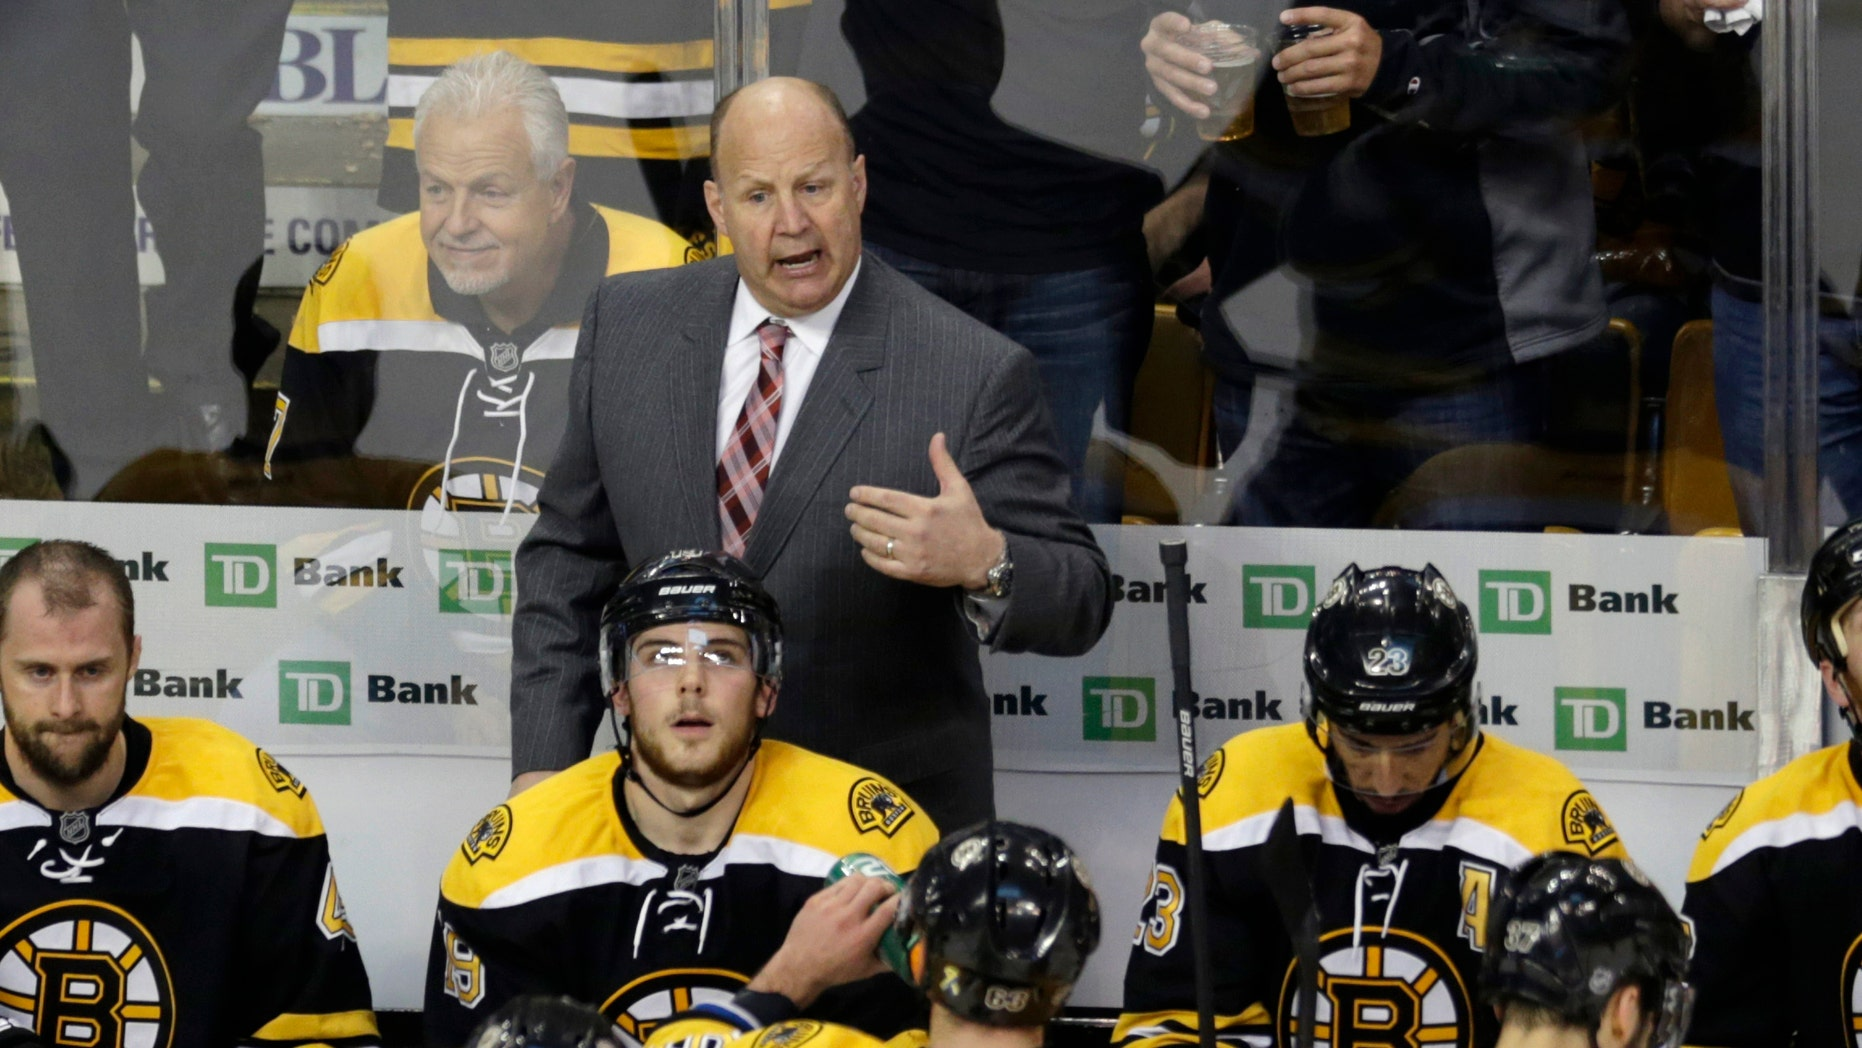 Boston Bruins head coach Claude Julien, standing center, talks with his players during a timeout against the New York Rangers during the third period in Game 5 of the Eastern Conference semifinals in the NHL hockey Stanley Cup playoffs in Boston, Saturday, May 25, 2013. (AP Photo/Charles Krupa)